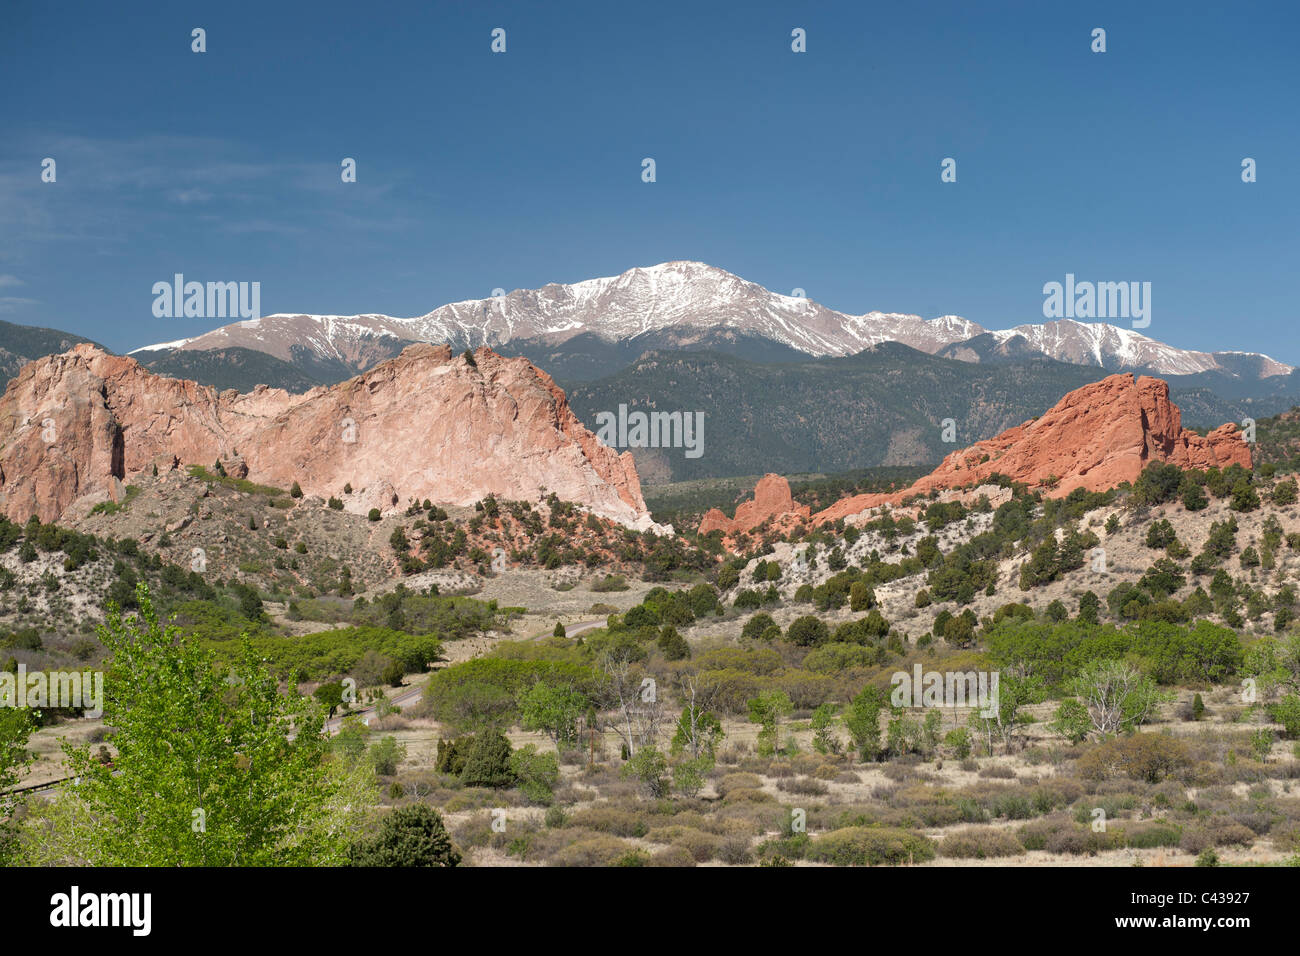 Pike's Peak and Garden of the Gods, in Colorado Springs, CO - Stock Image